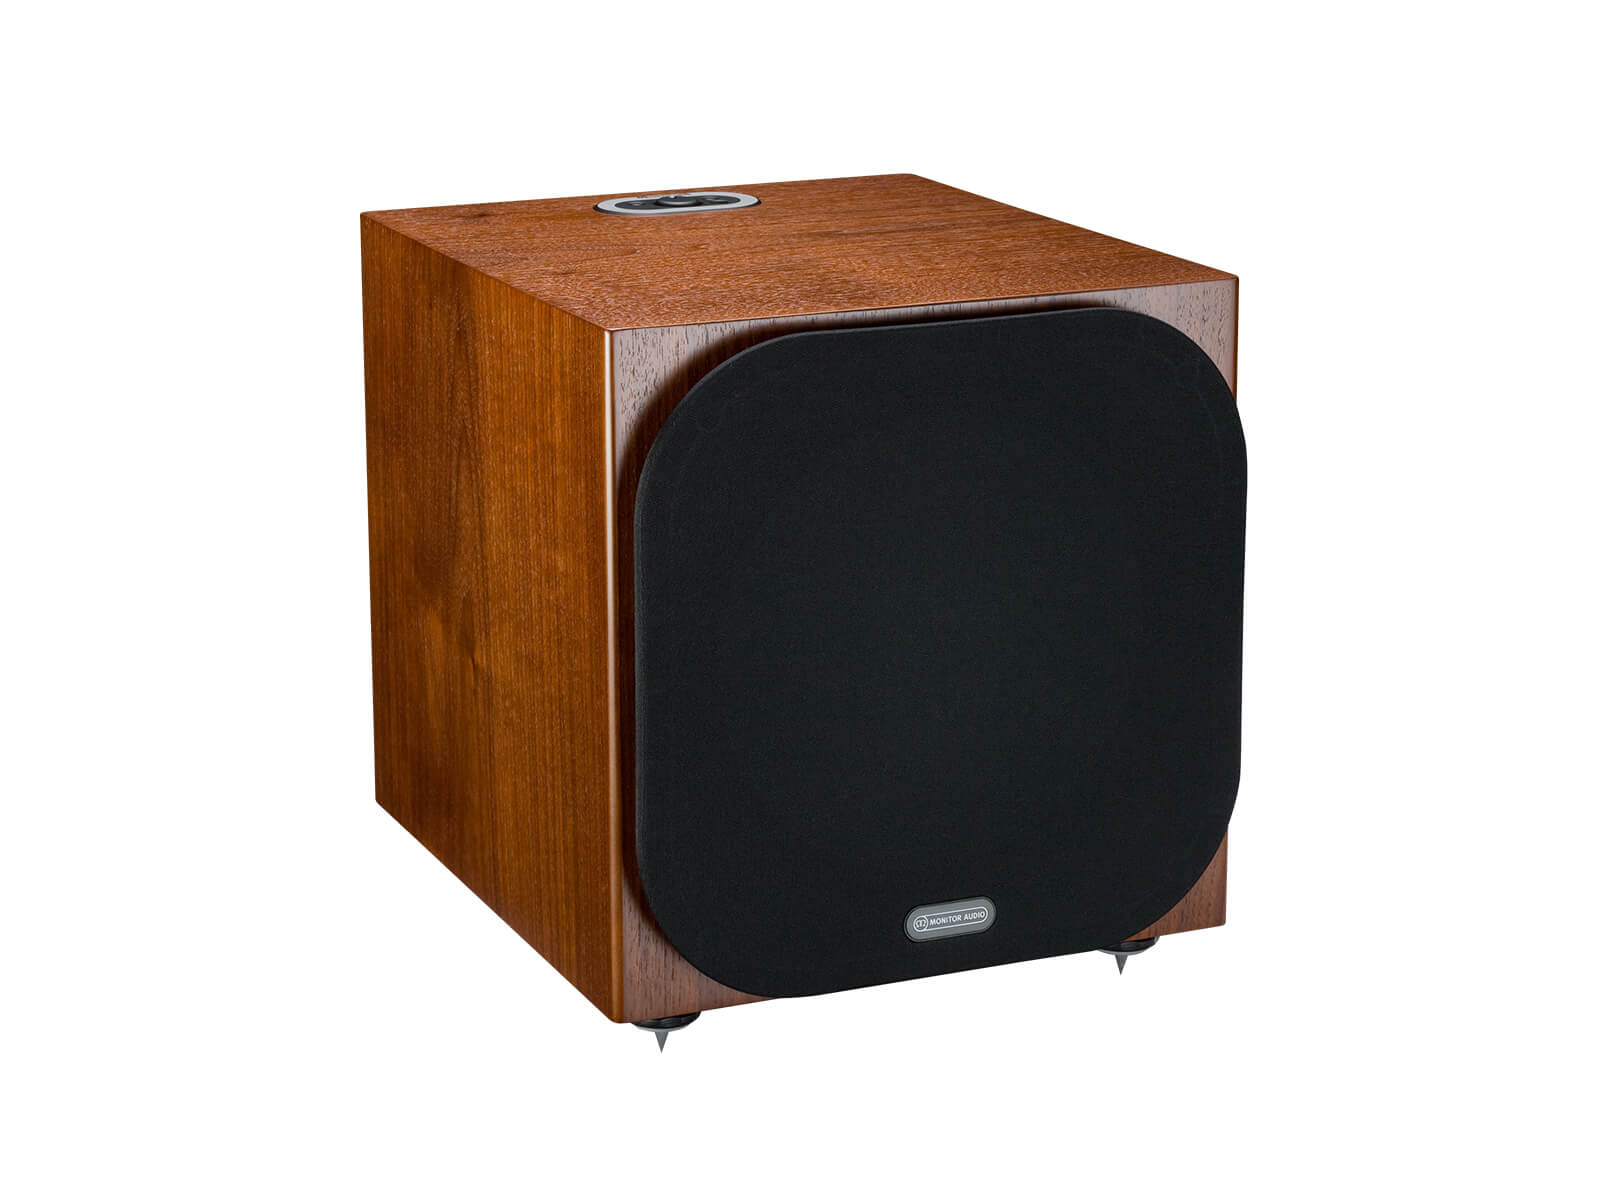 Silver W-12 subwoofer, featuring a grille and a walnut finish.